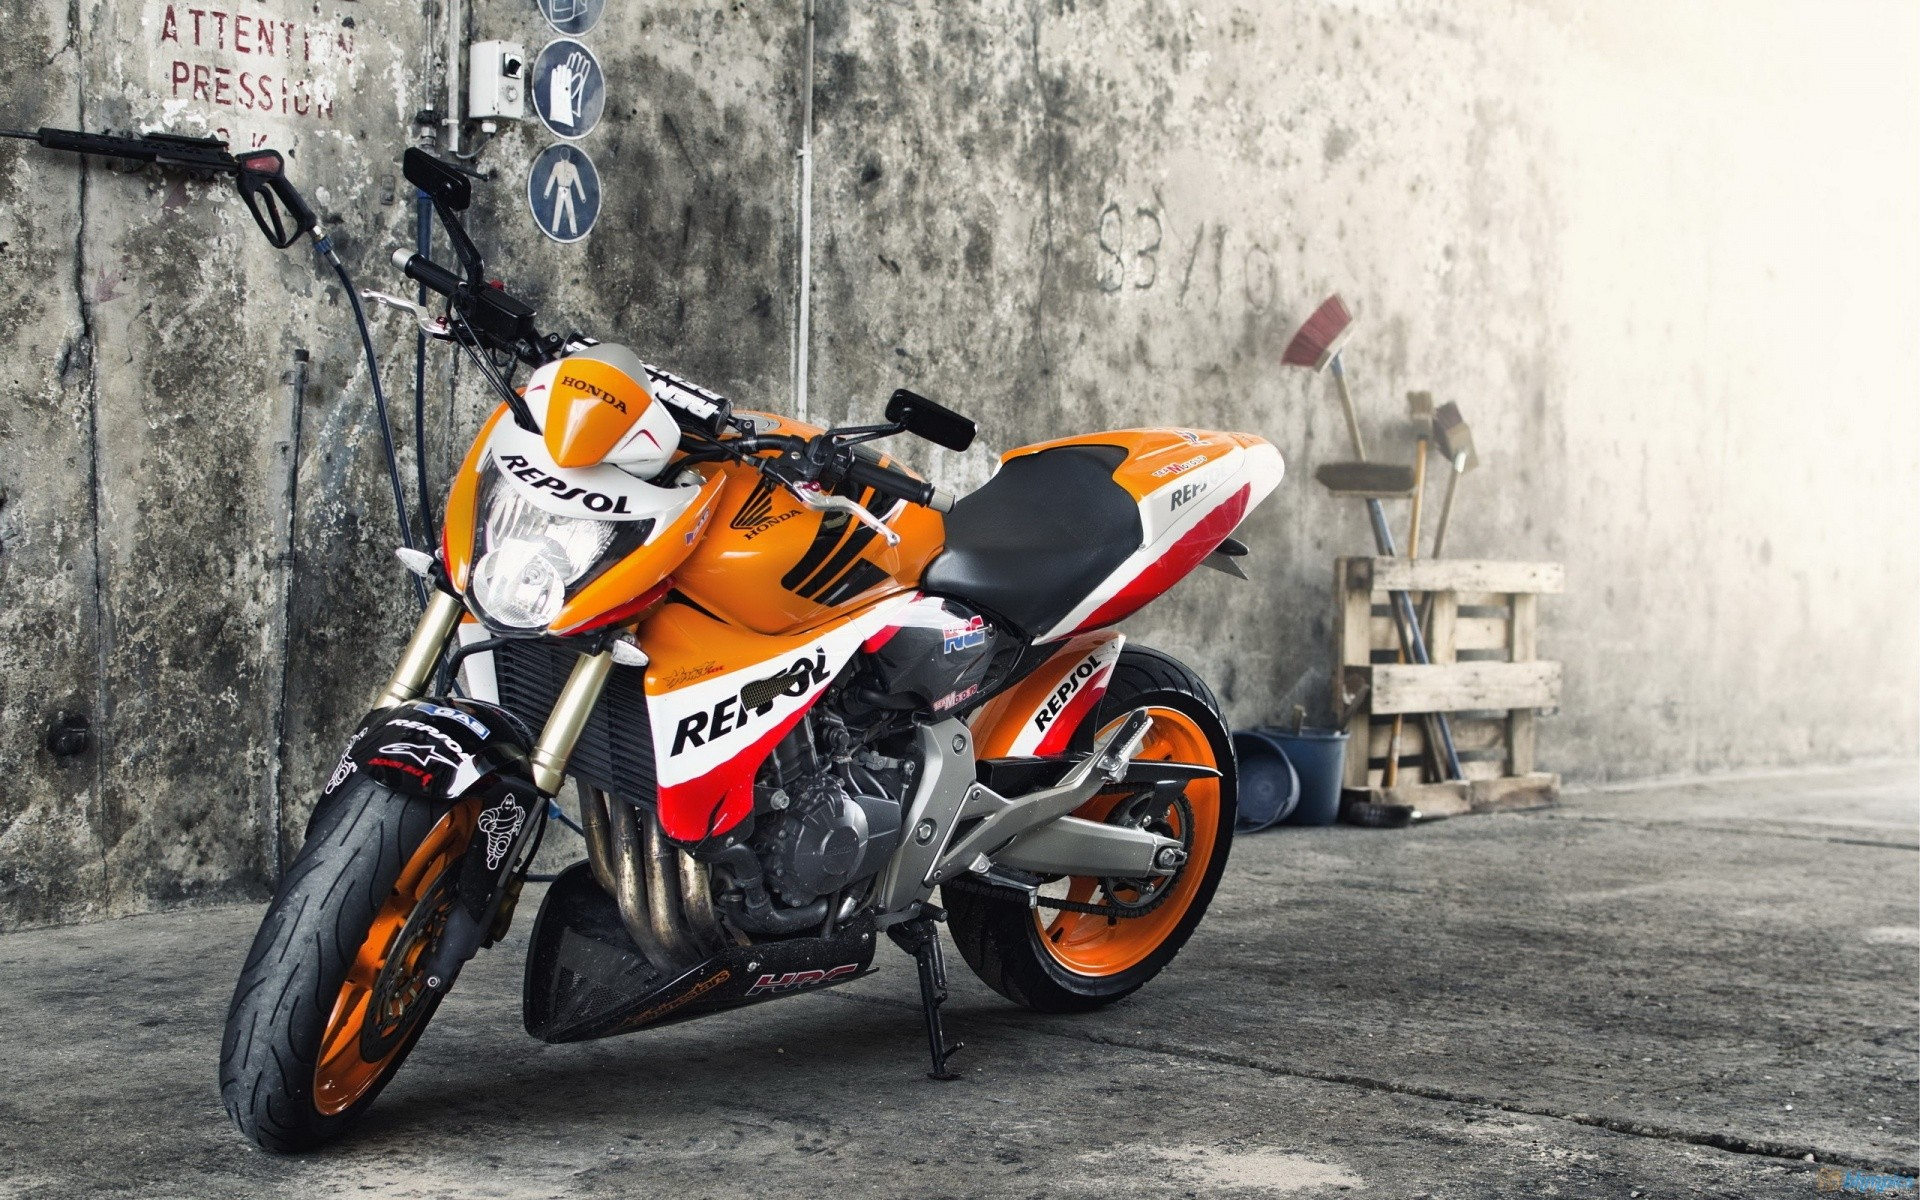 Honda Motorbikes Hd Wallpaper: Motorbikes Honda Repsol Fresh New Hd Wallpaper Xpx Motor 1920x1200px